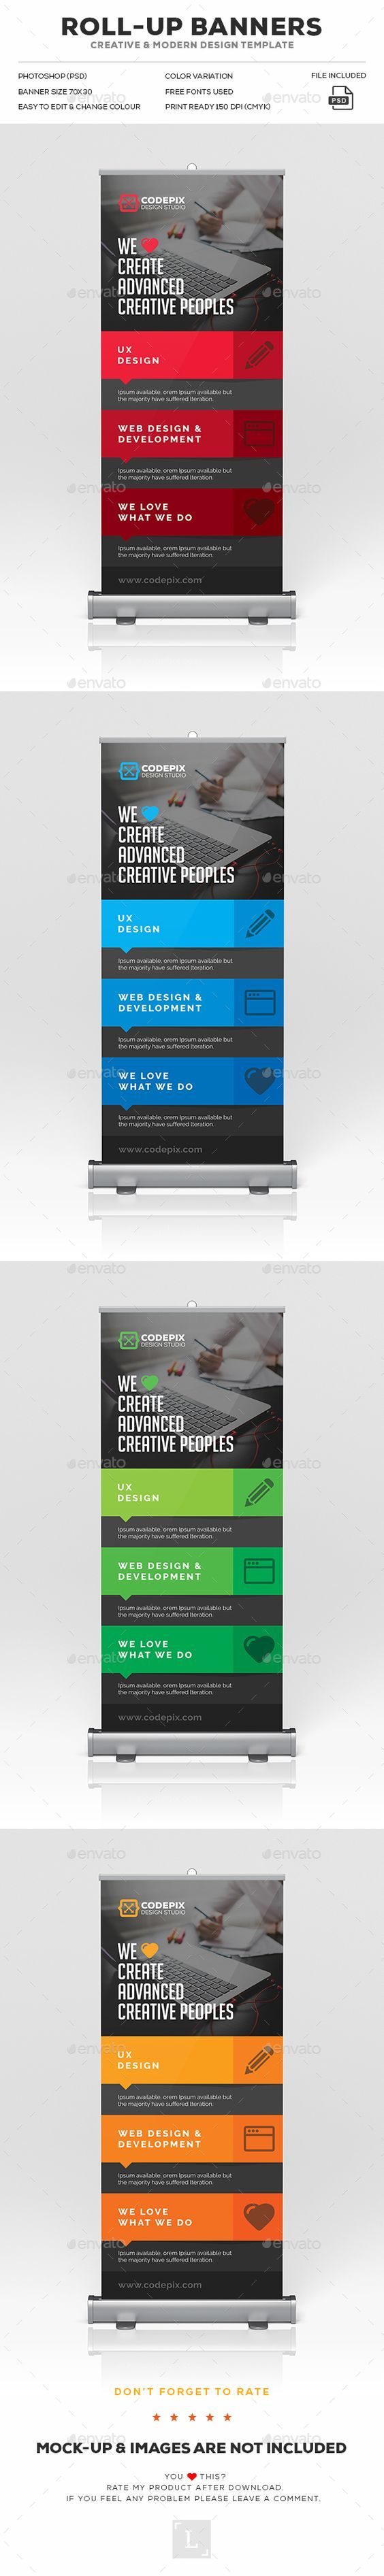 RollUp Banner — Photoshop PSD #advertisement #camera • Available here → https://graphicriver.net/item/rollup-banner/18046555?ref=pxcr: